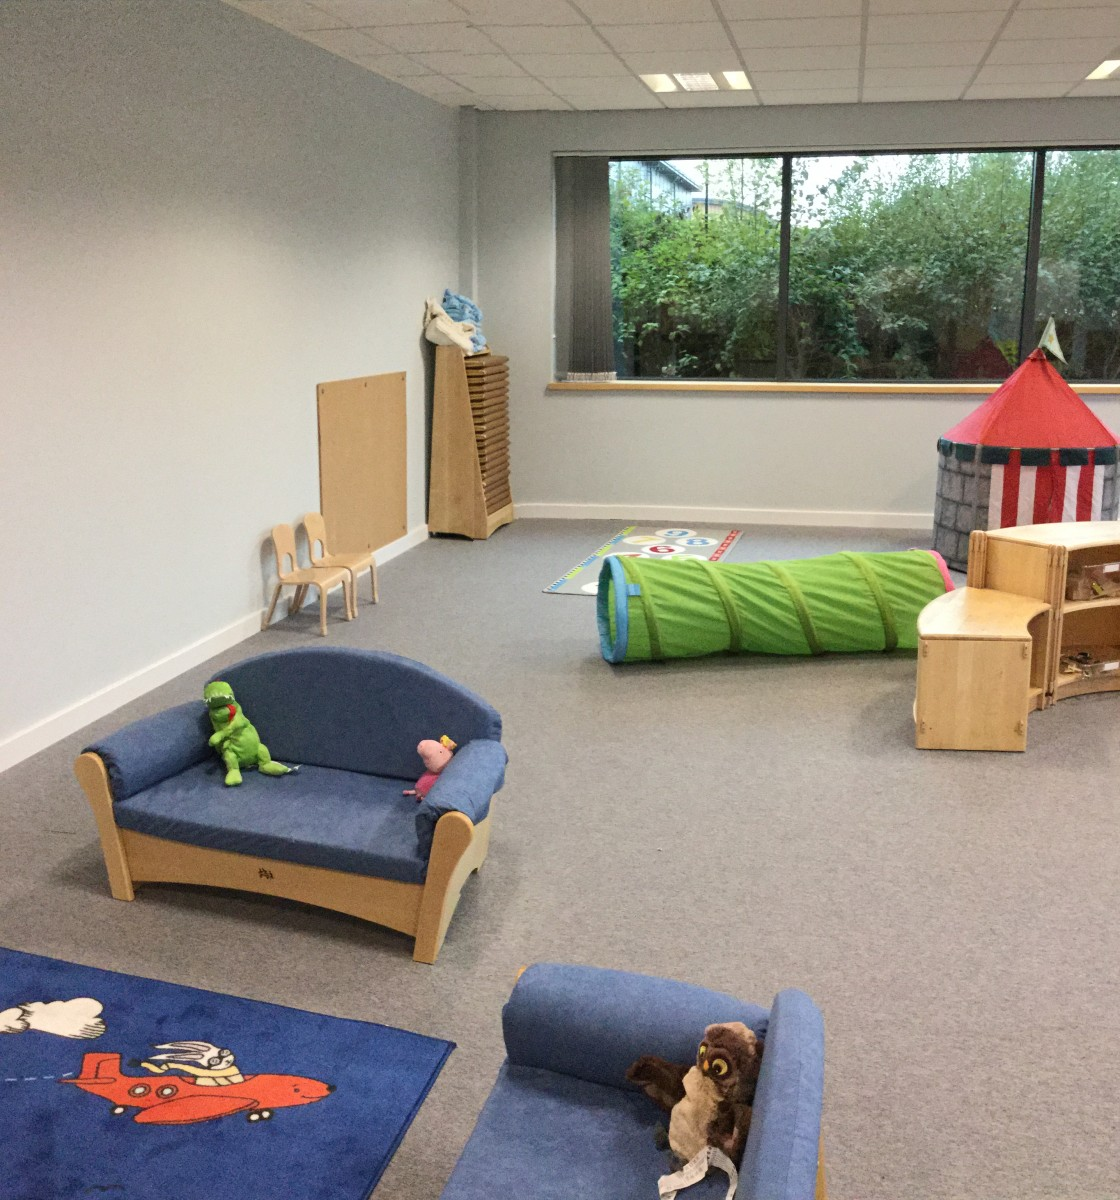 A large open Early Years environment